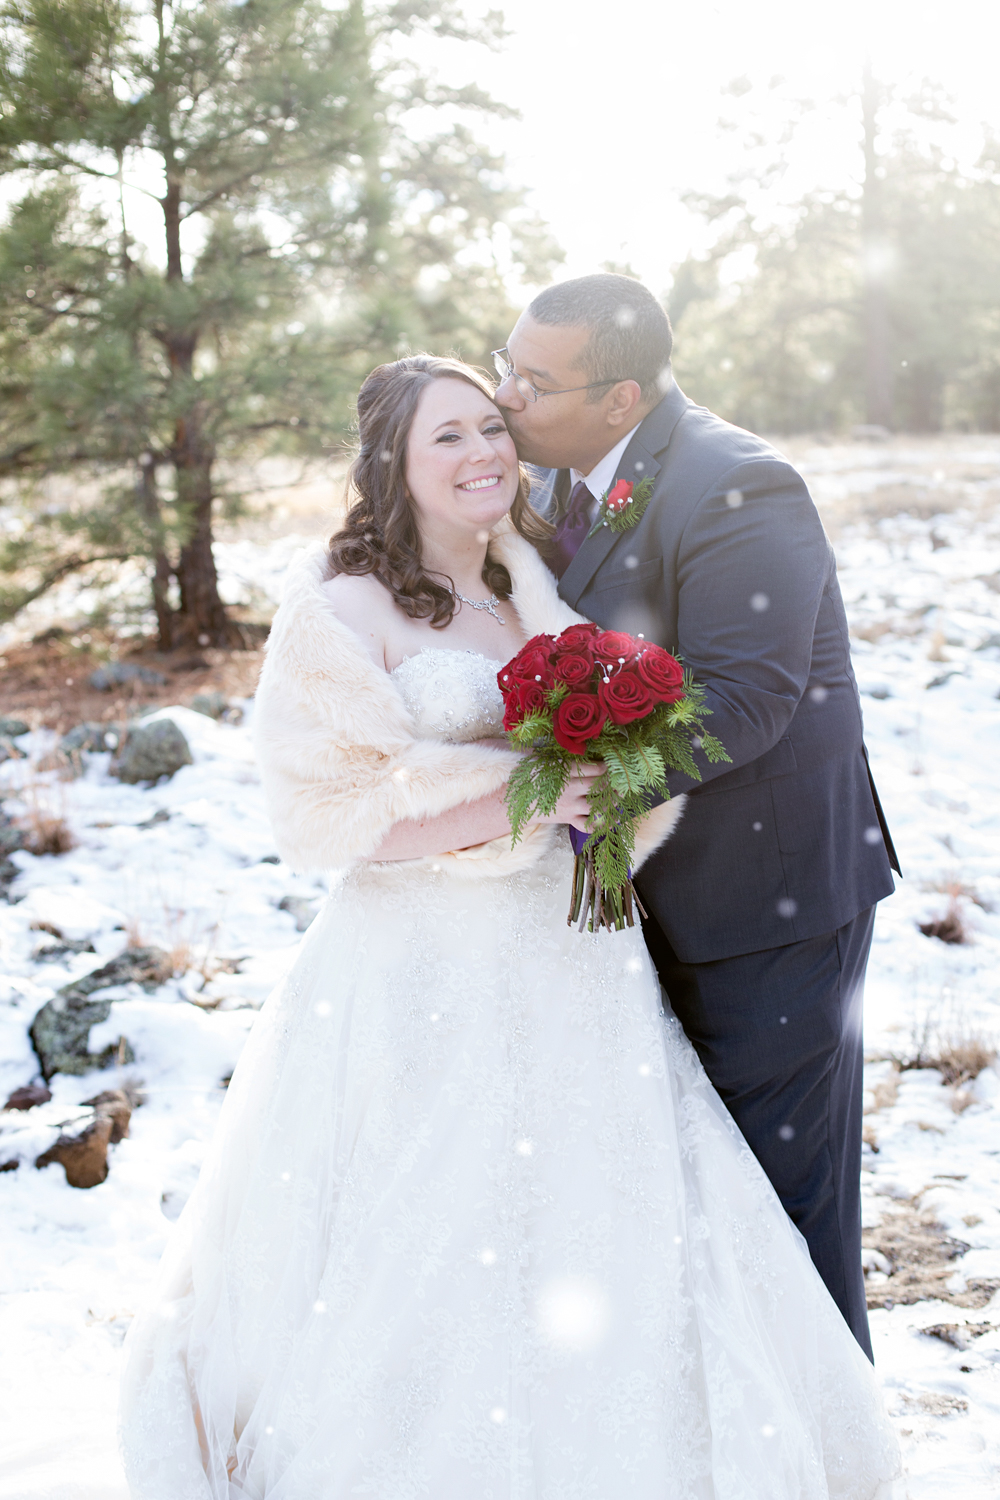 A Christmas Day Winter Wonderland Wedding in Arizona - BridalPulse